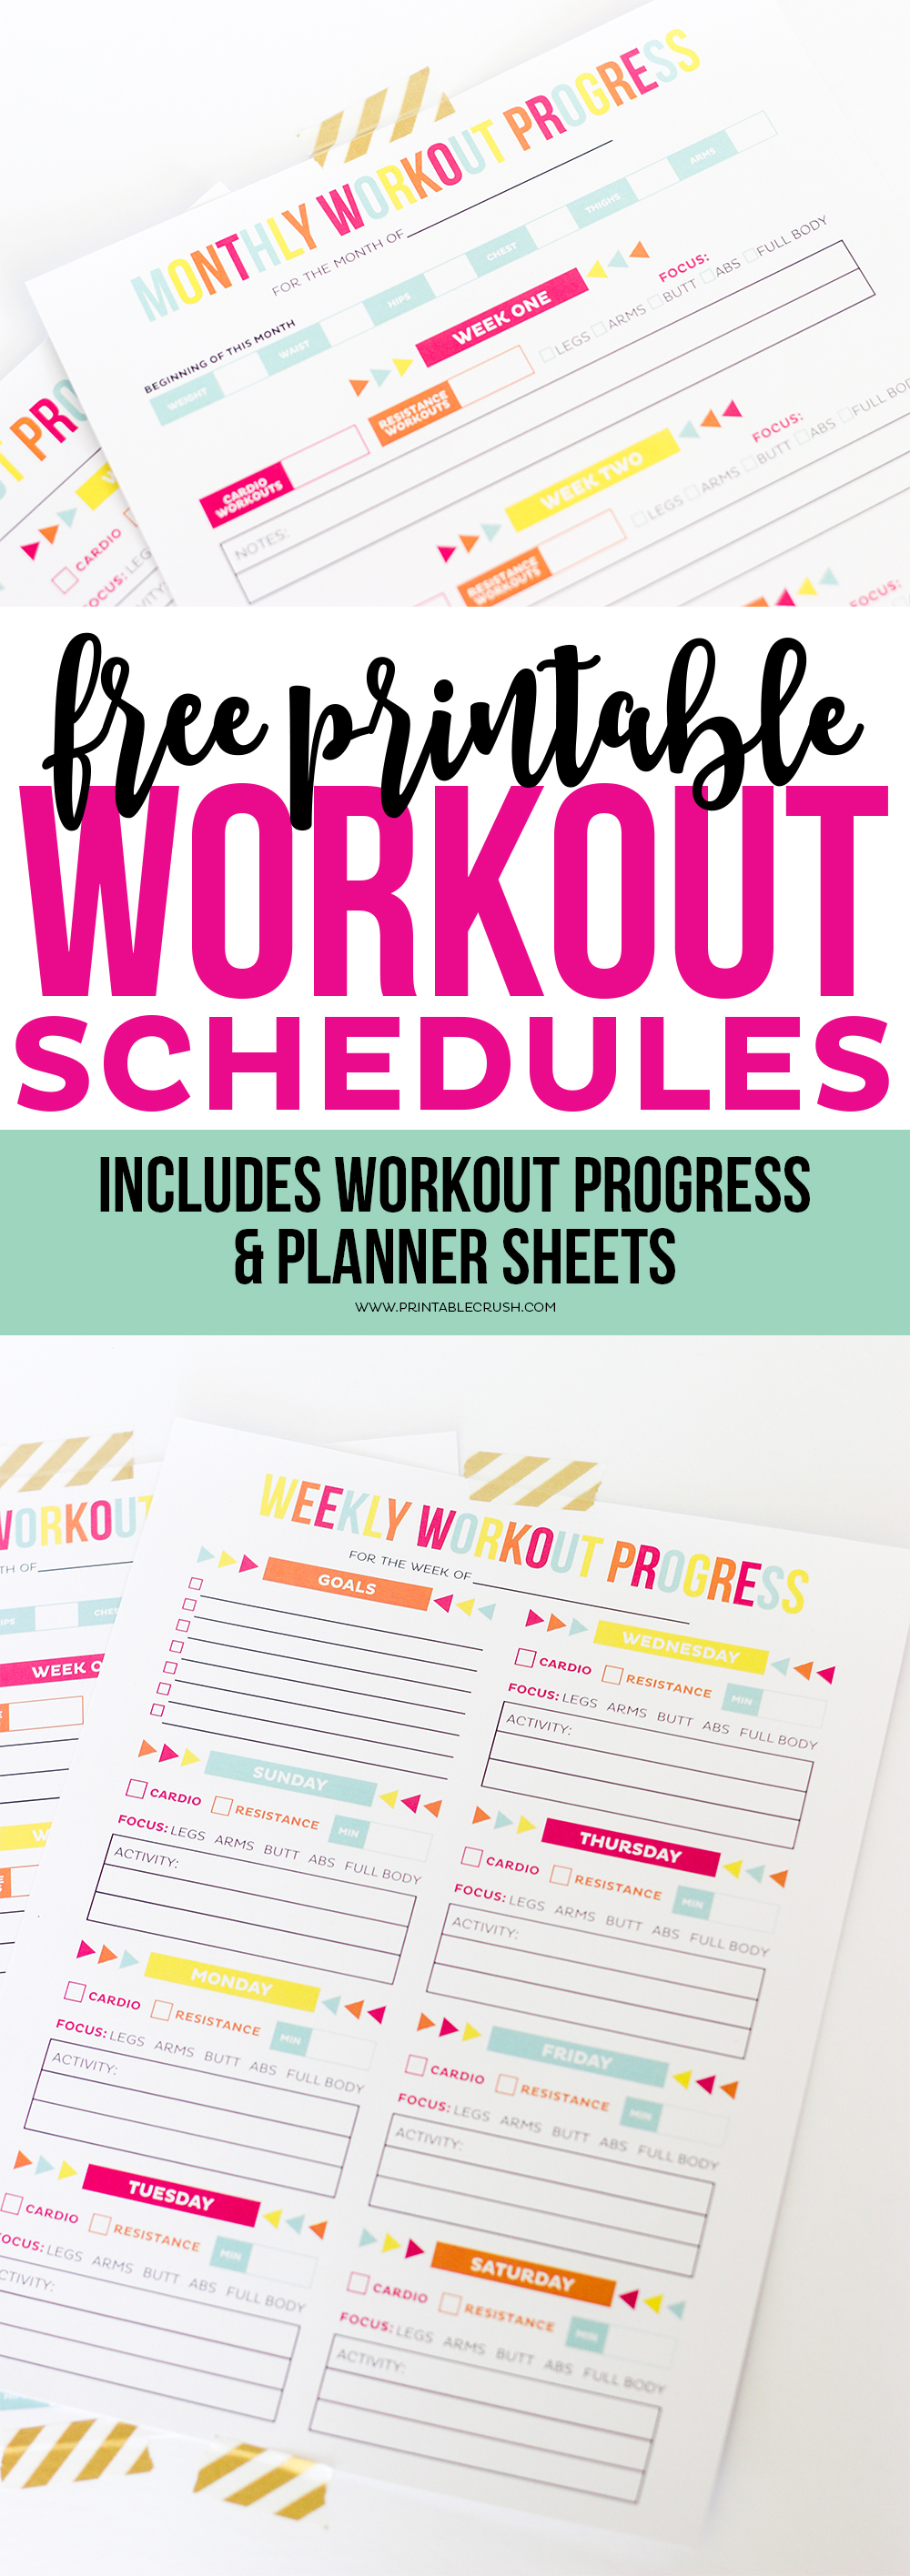 graphic regarding Printable Workout Routine known as Work out Calendar - No cost Printable Agenda/Breakthroughs Sheets